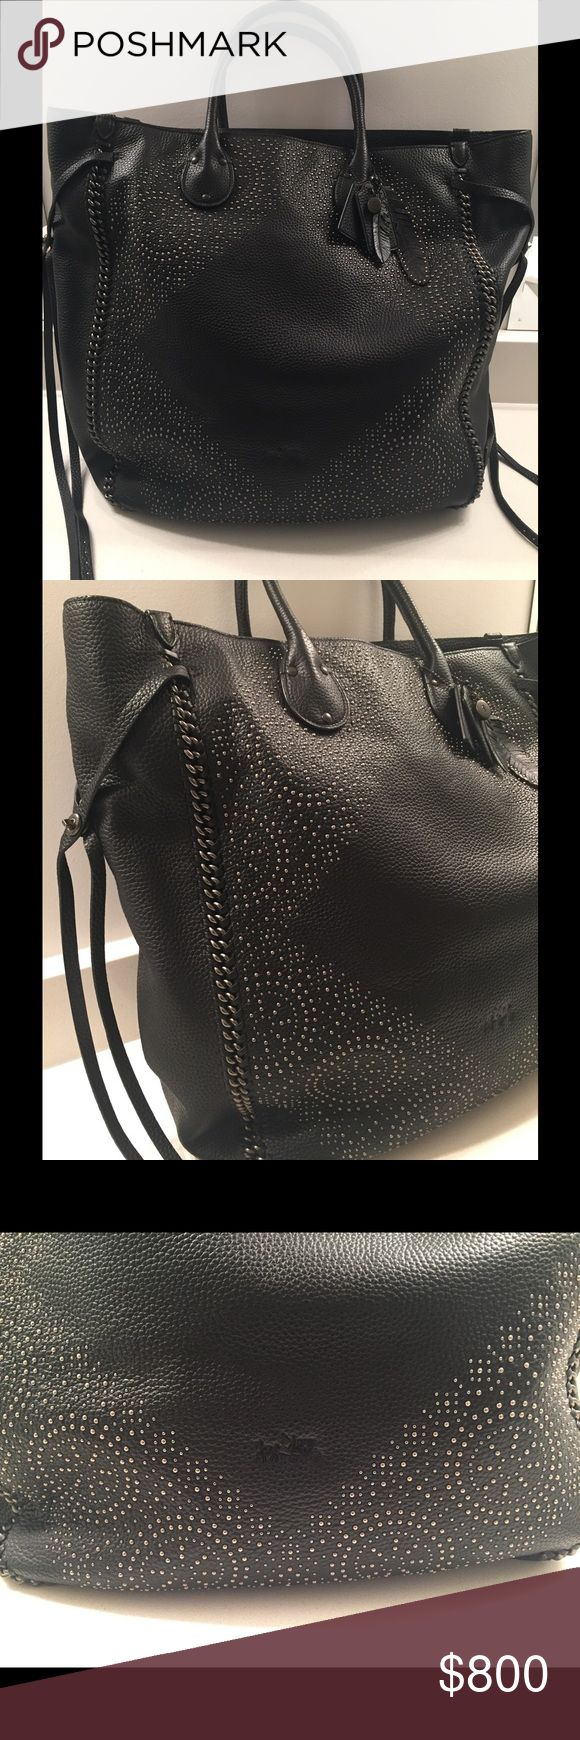 """Coach Travel Tote Coach Travel Tote - Travel in Style!  This is an amazing bag, with loads of finishes g details and mini metal studs.  Brand new with tags, never used.  Retail $1,295.00.  Dimensions: 15""""w. X 17.5""""h. x 6""""d. Comes with dust bag. Coach Bags Totes"""